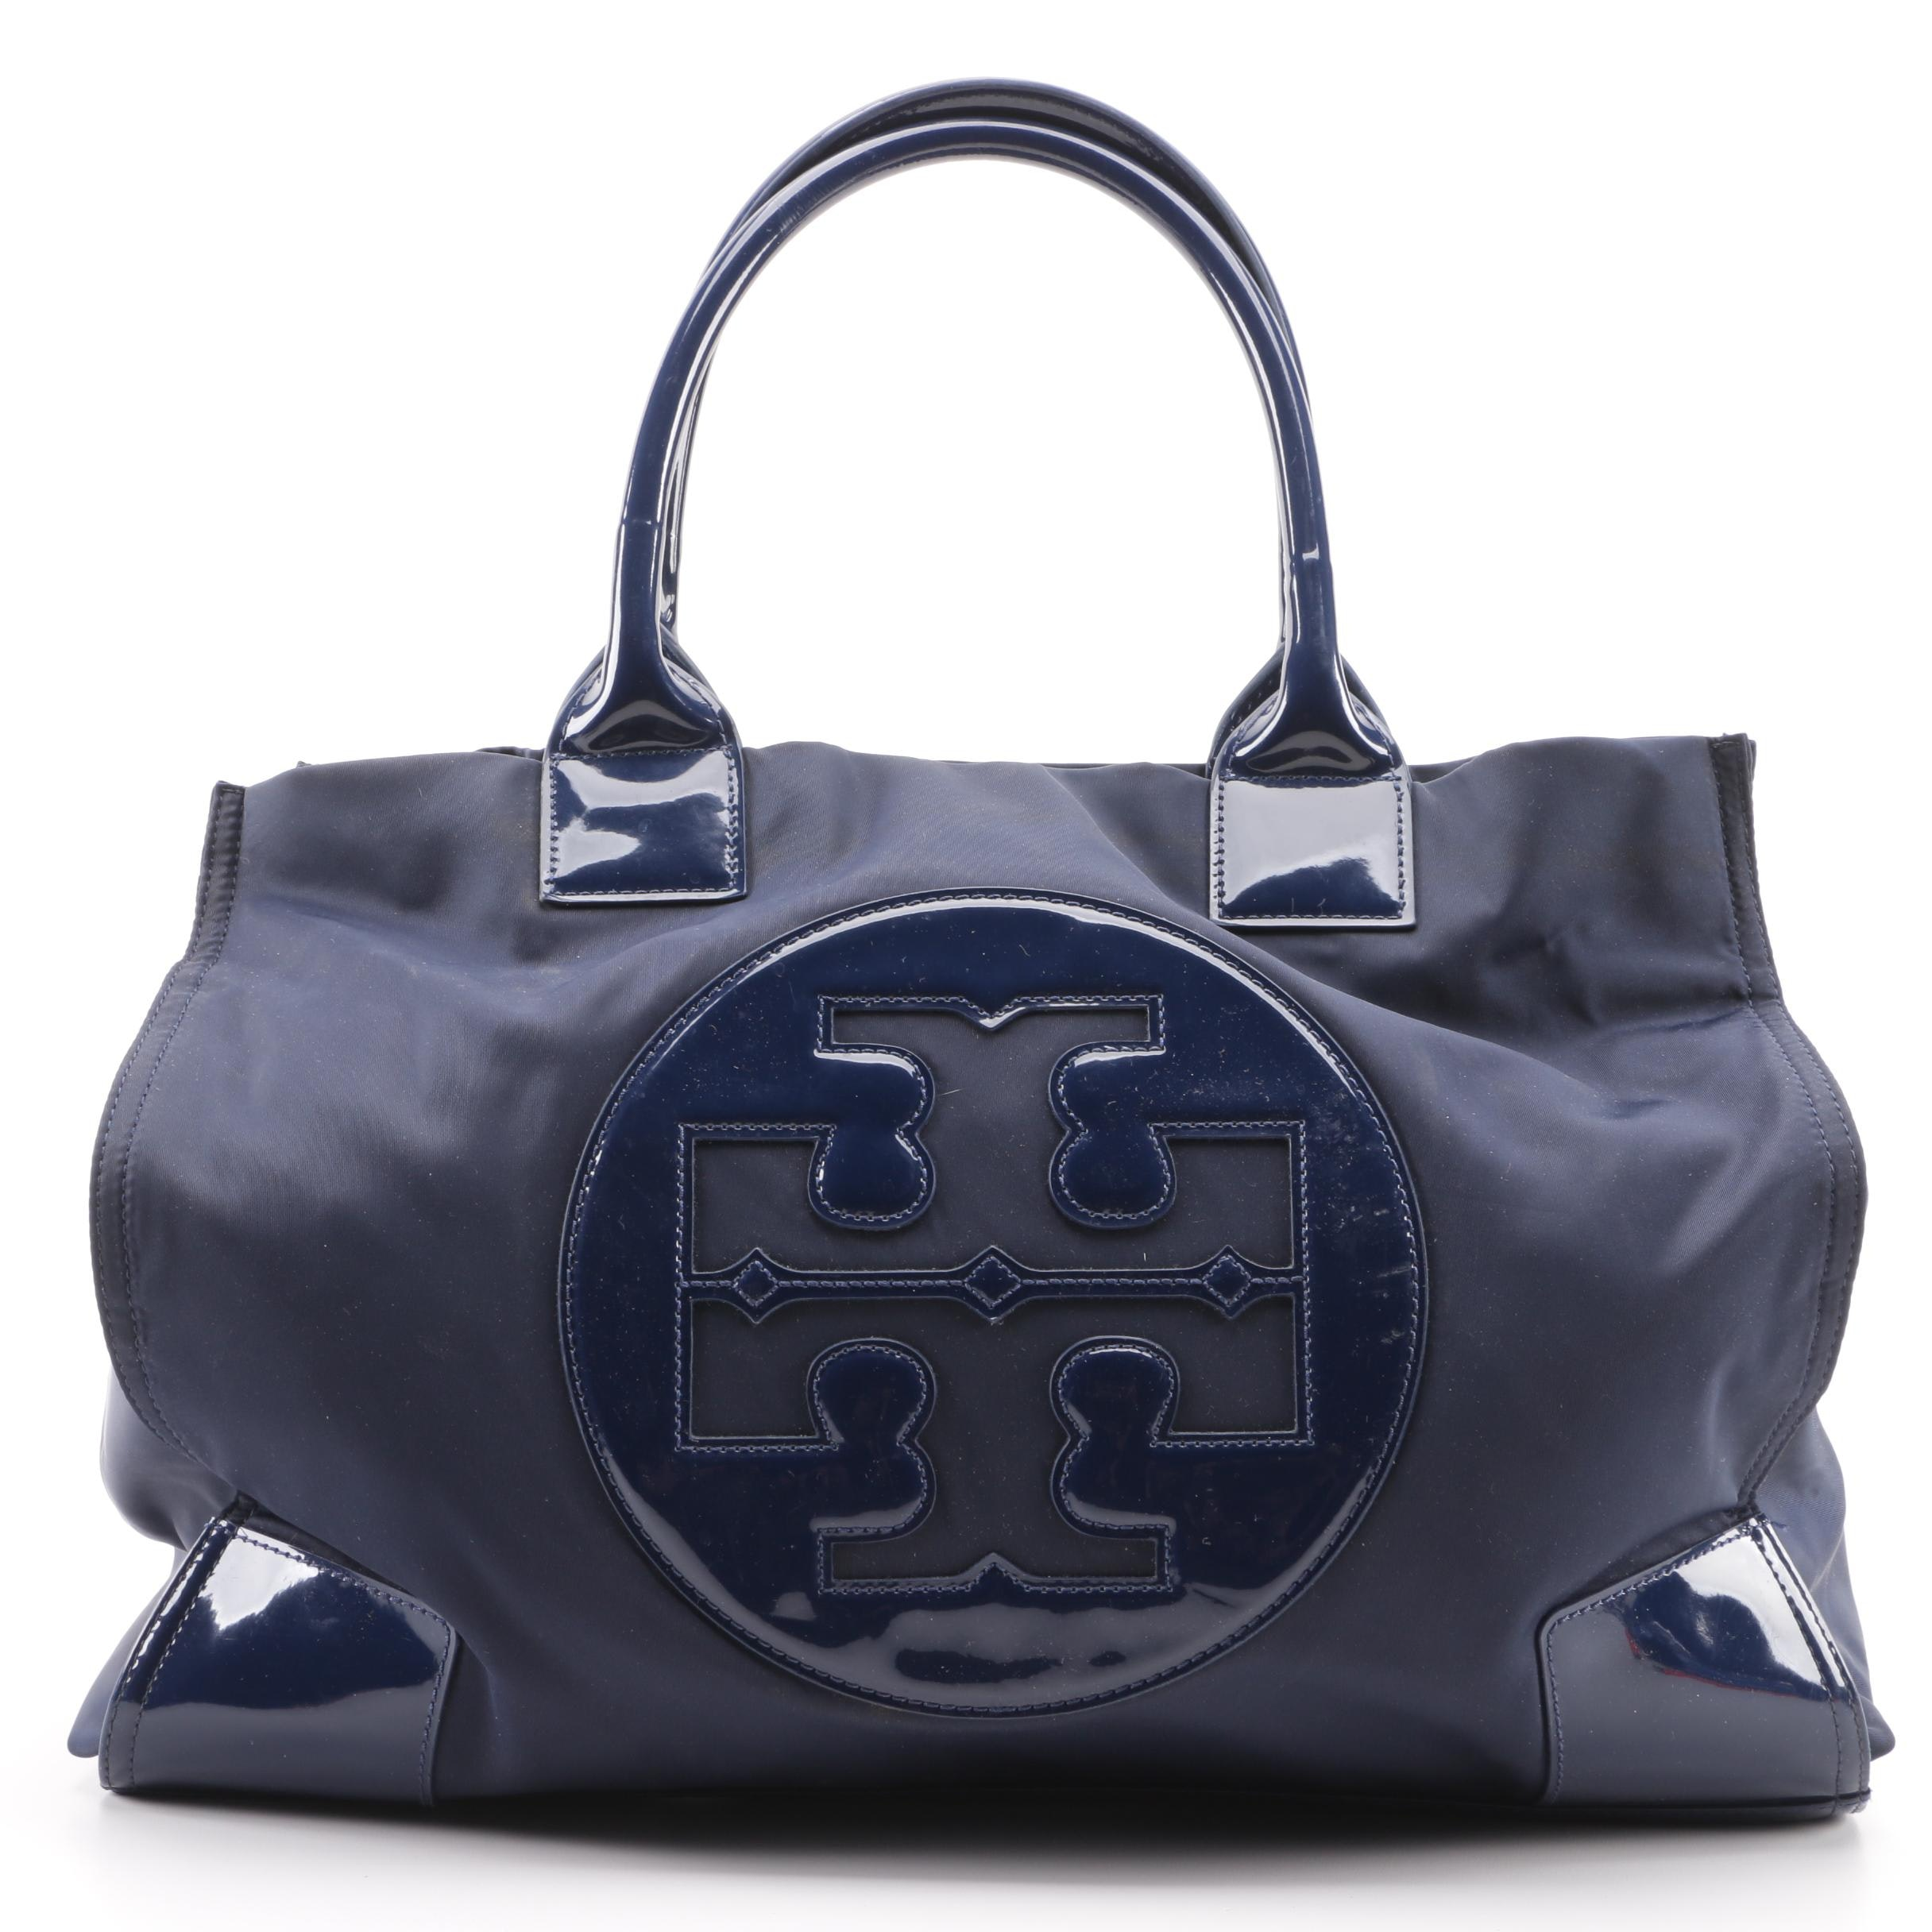 Tory Burch Ella Large Navy Blue Nylon and Patent Leather Tote